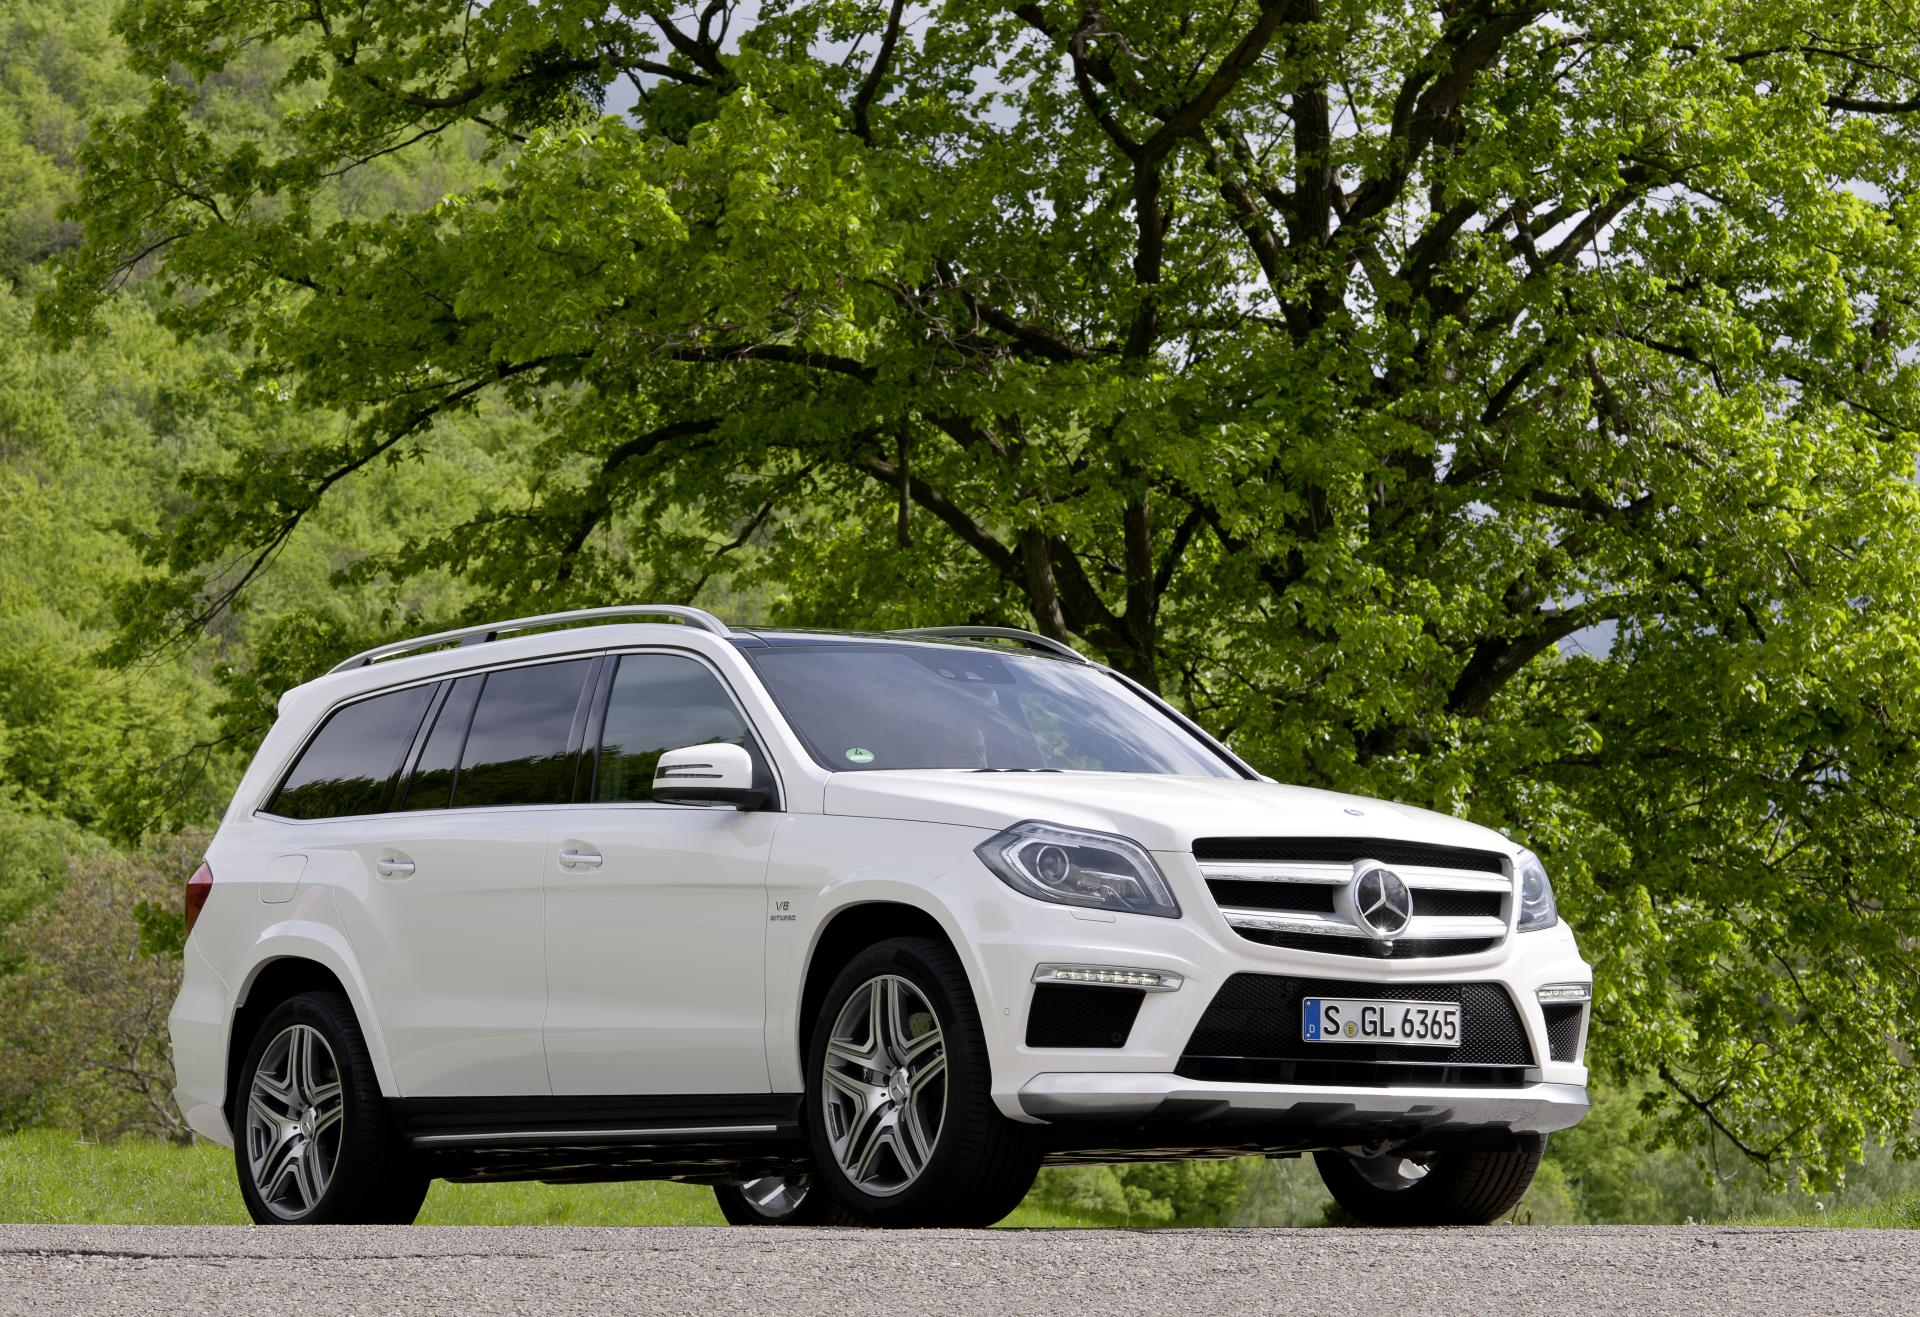 2013 Mercedes-Benz GL 63 AMG News and Information